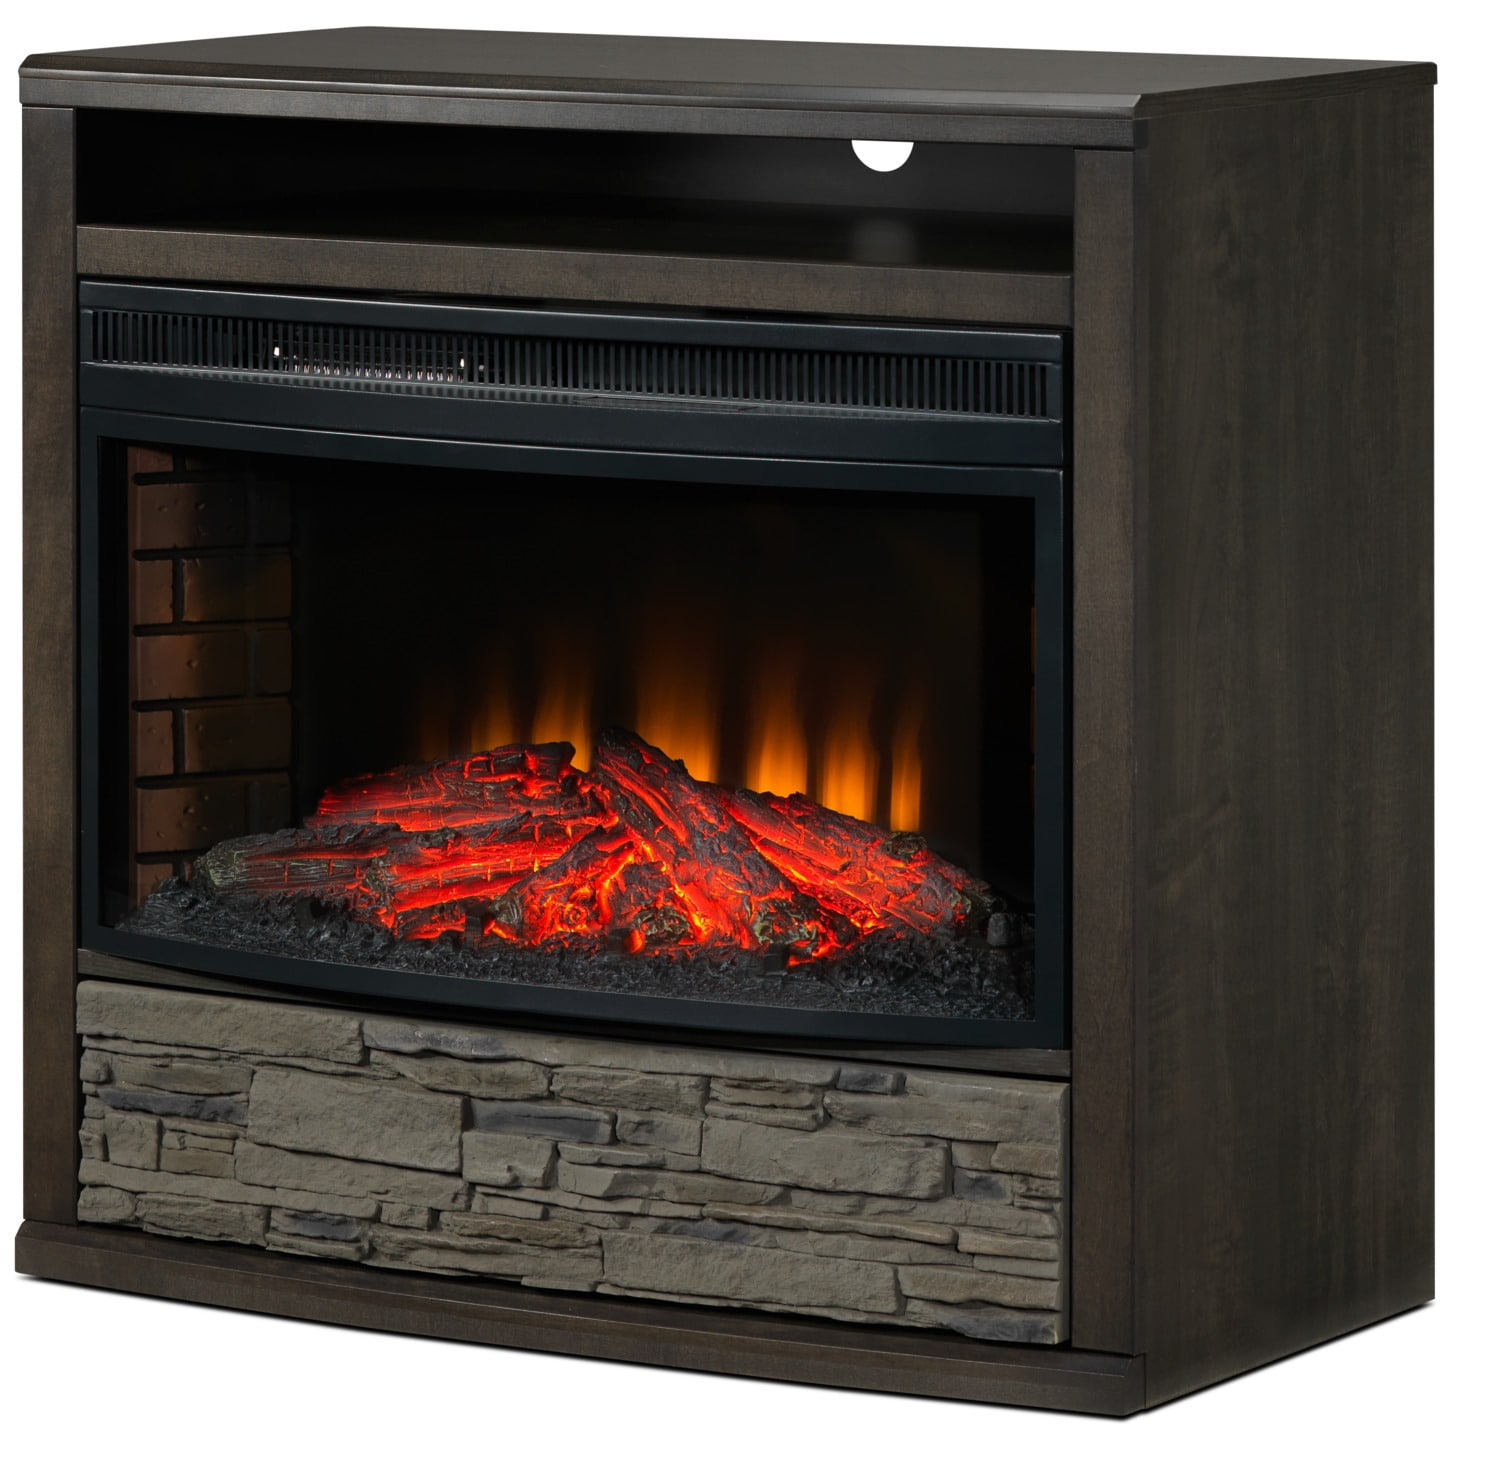 Onyx Fireplace TV Stand - Charcoal